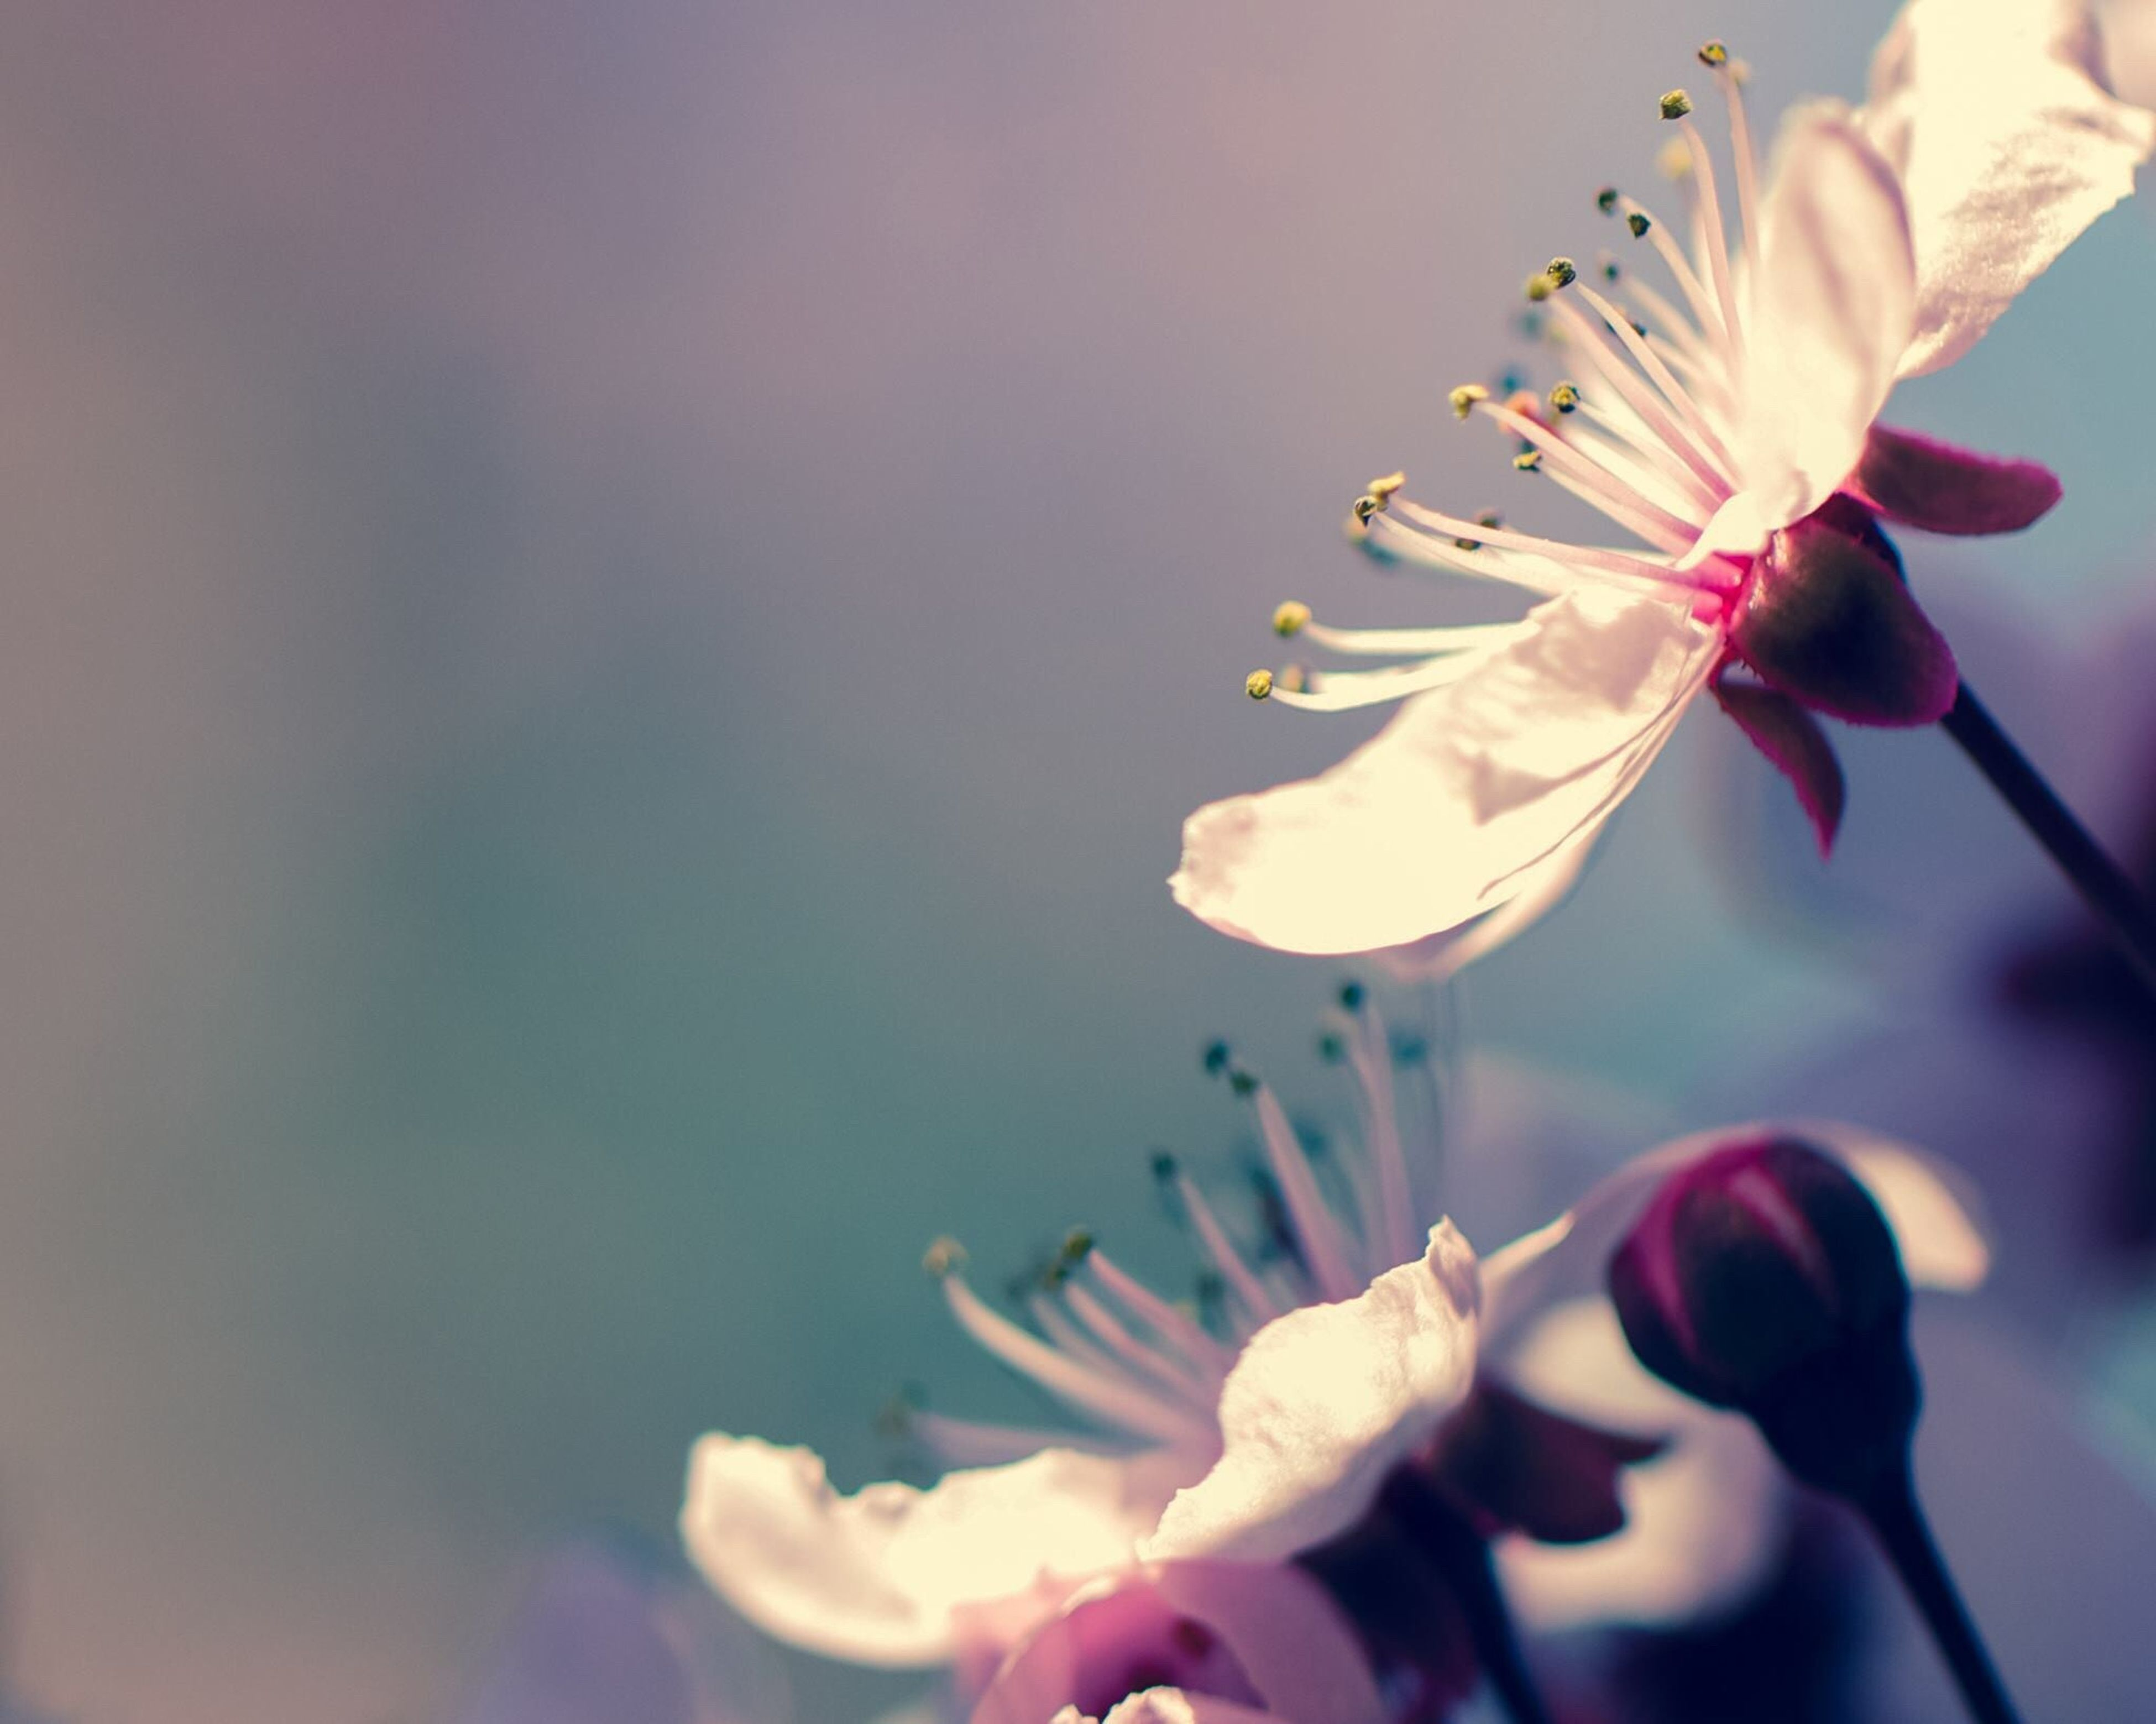 flower, freshness, fragility, petal, flower head, growth, beauty in nature, focus on foreground, blooming, nature, close-up, pink color, stem, in bloom, plant, bud, blossom, selective focus, sky, pollen